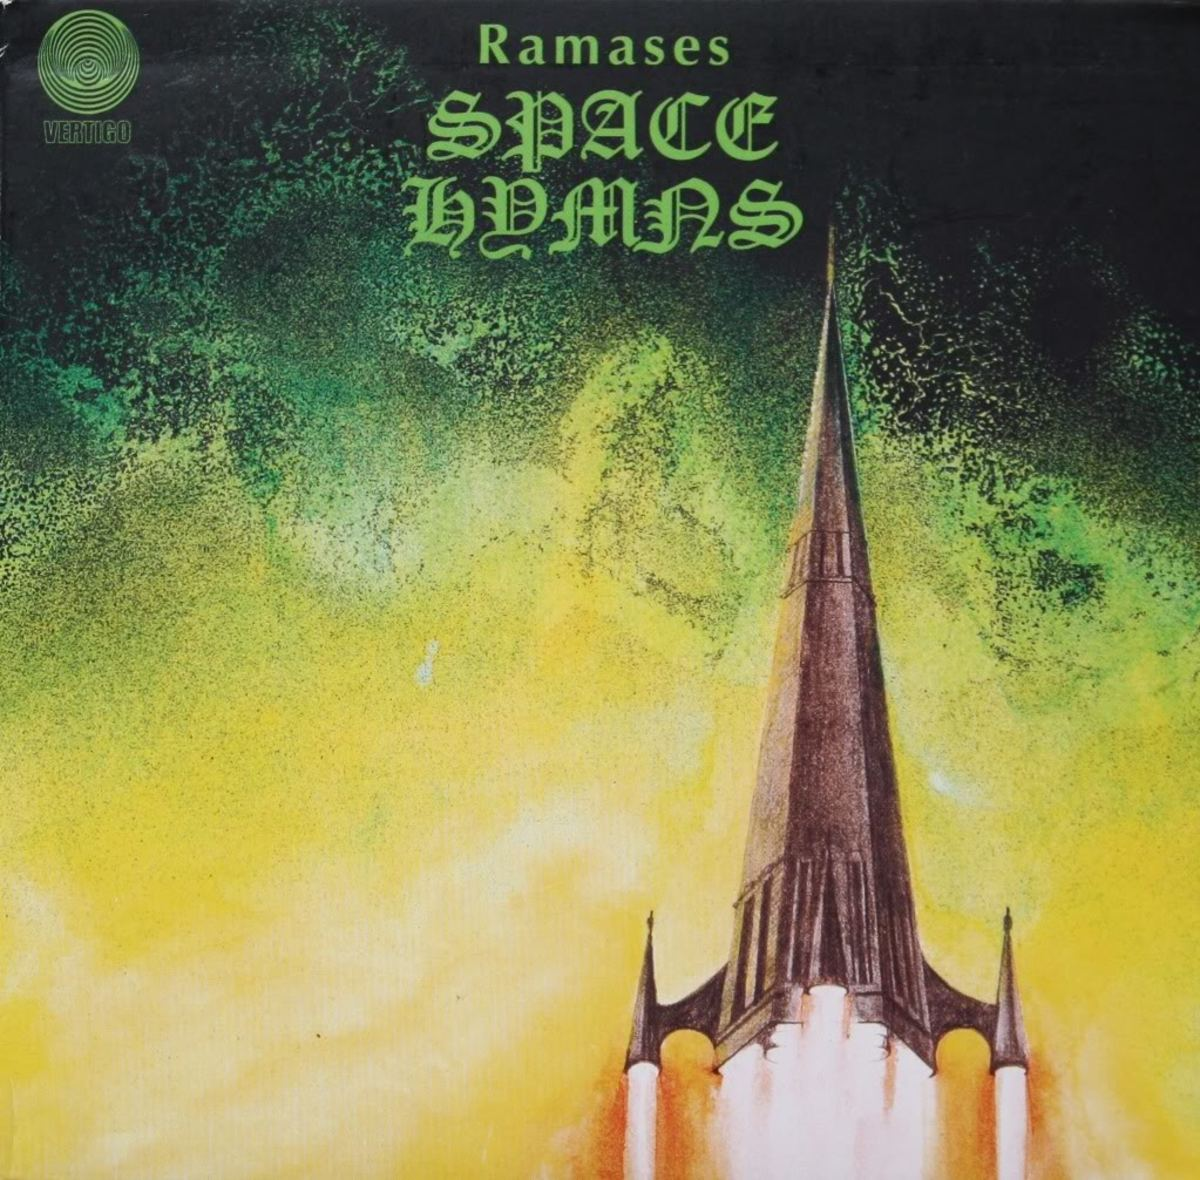 "Ramases ""Space Hymns"" Vertigo Records 6360 046 12"" LP Vinyl Record, UK Pressing (1971) Six Panel Album Cover Art & Design by Roger Dean"